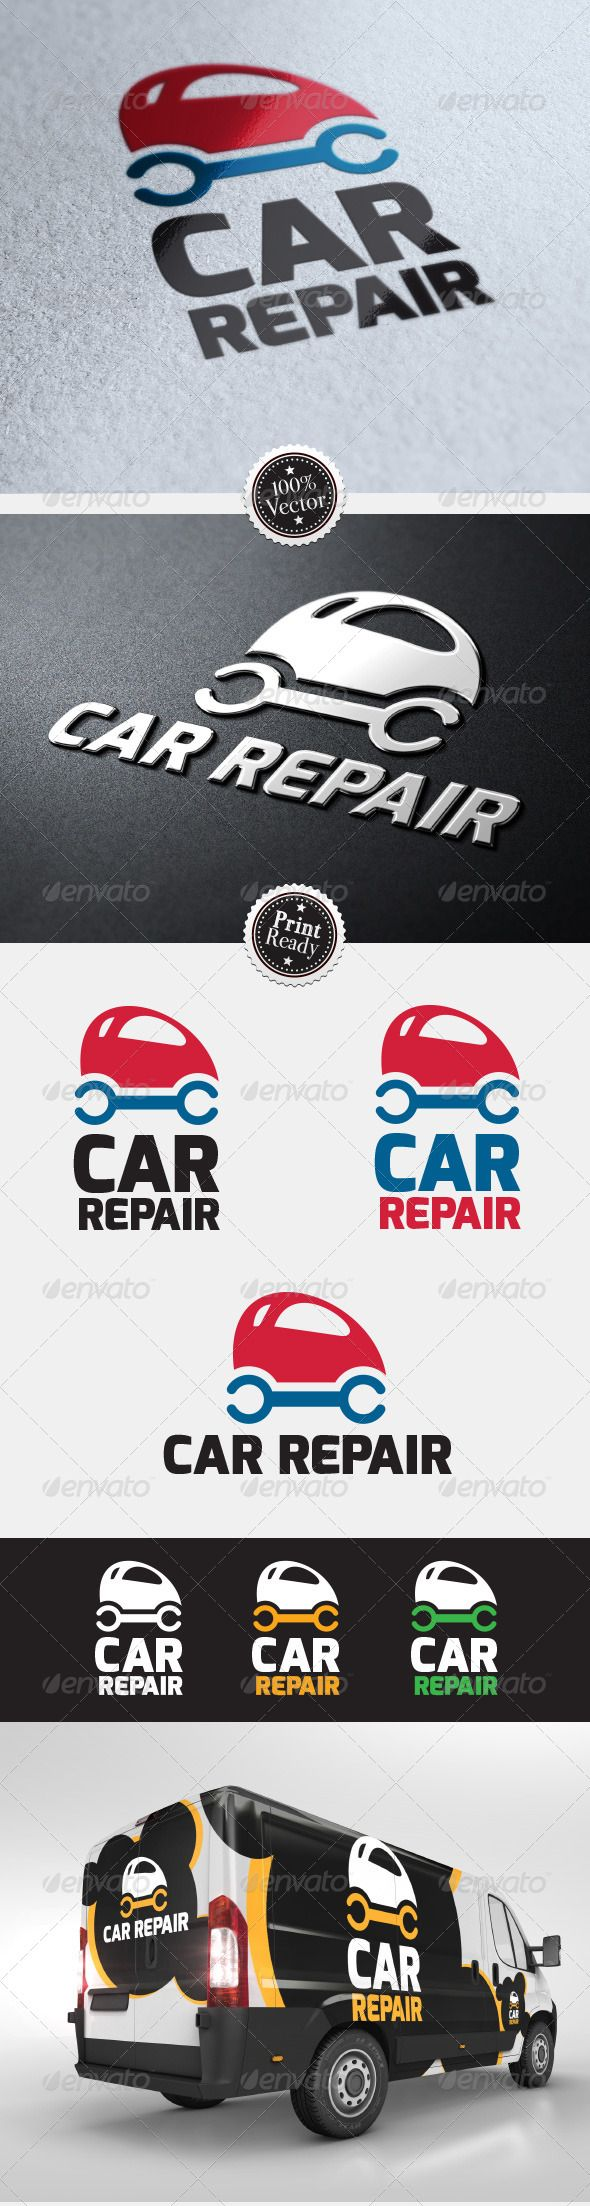 Best Service Car Ideas On Pinterest Car Service Near Me Car - Graphics for cars near me